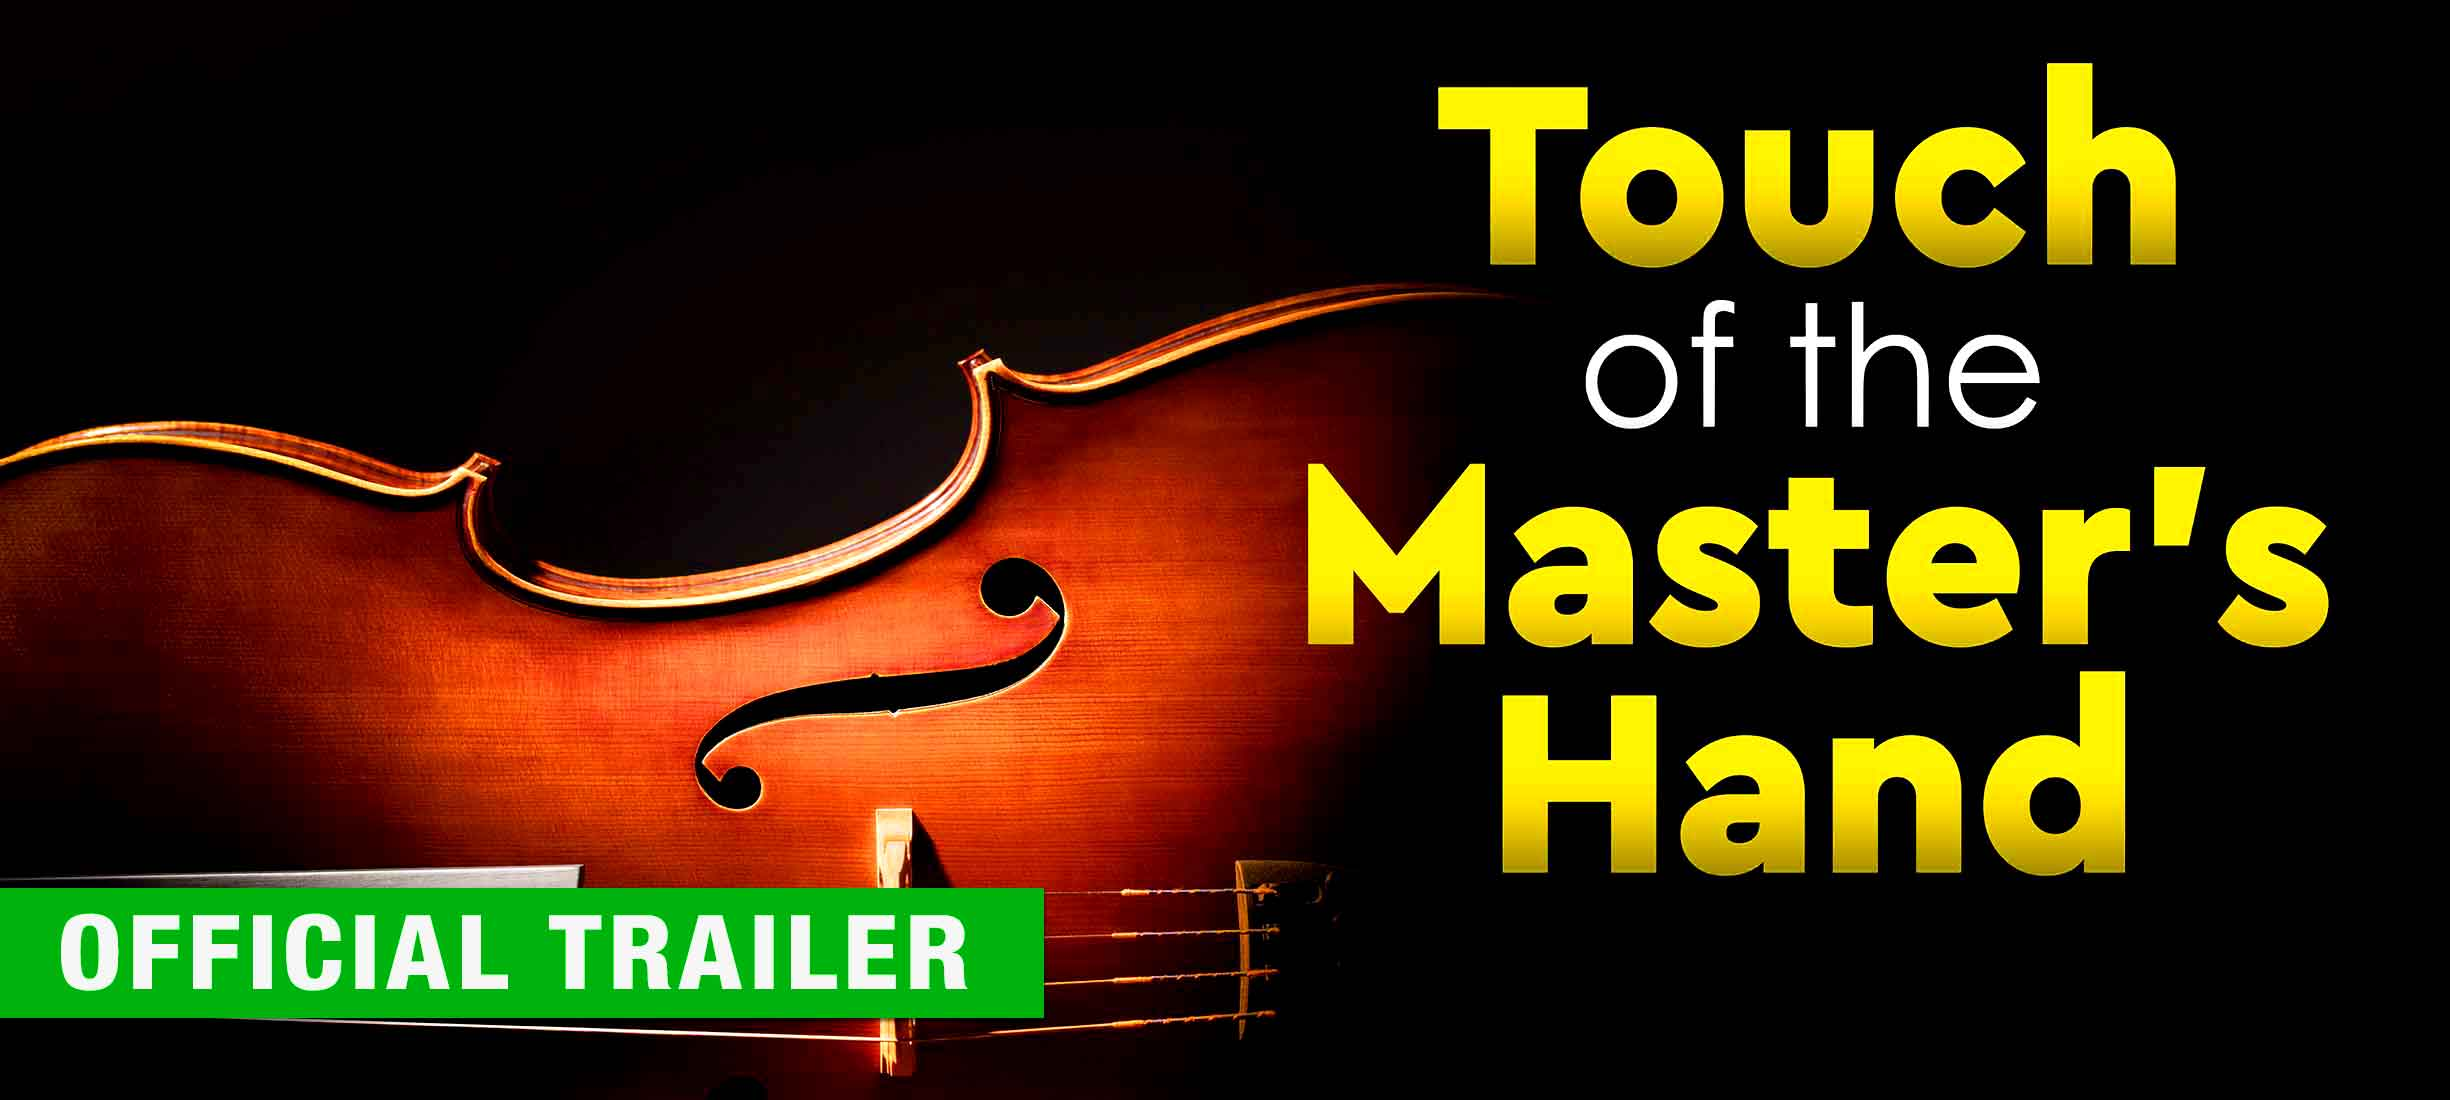 Touch of the Master's Hand: Official Trailer